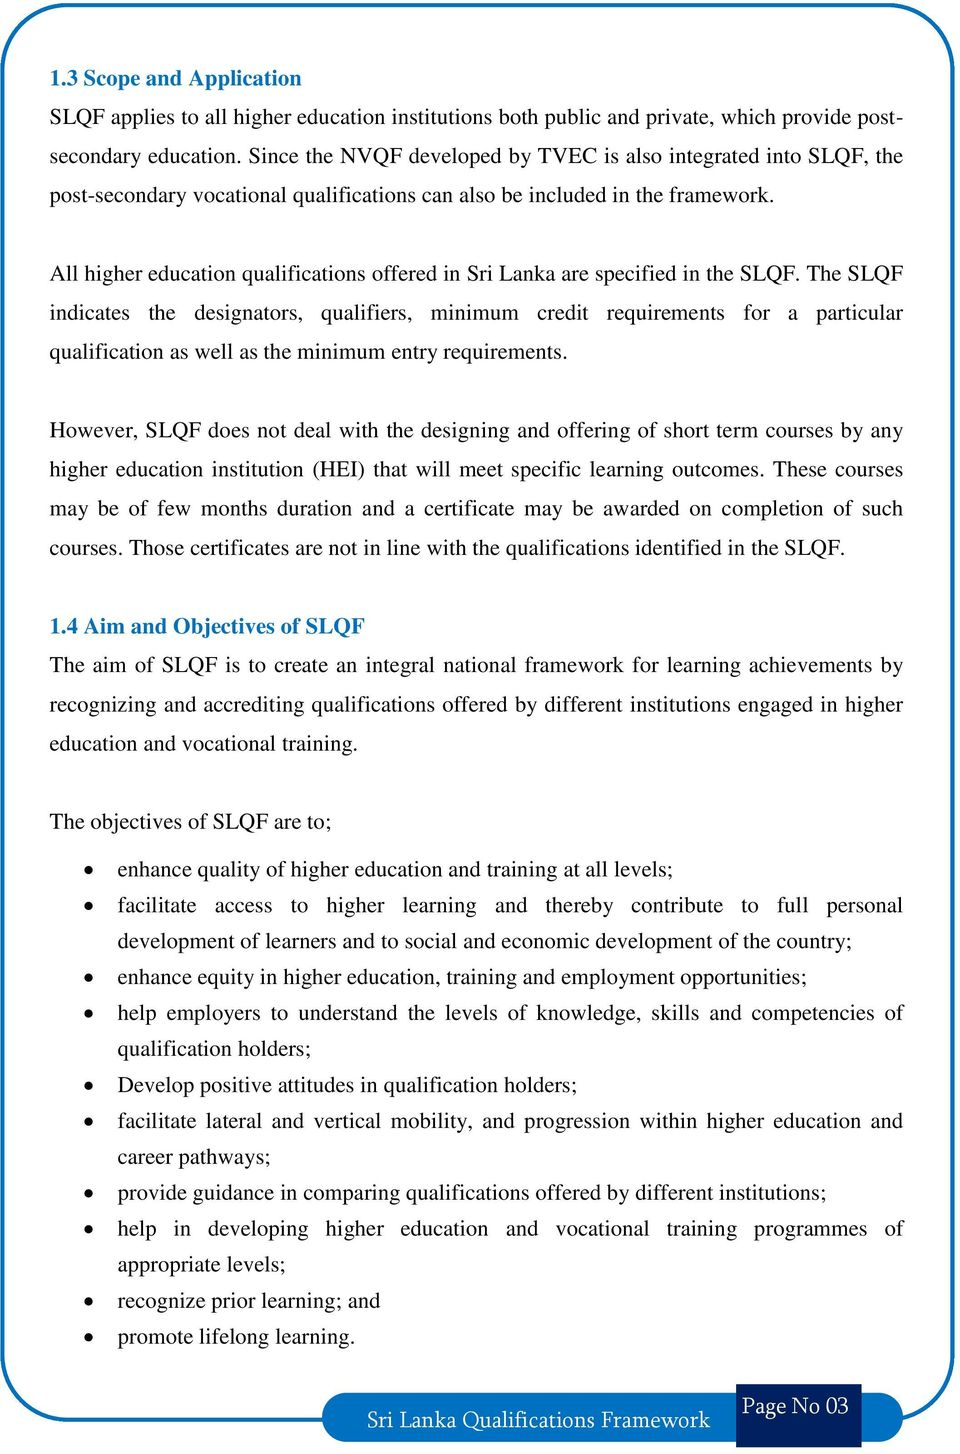 All higher education qualifications offered in Sri Lanka are specified in the SLQF.